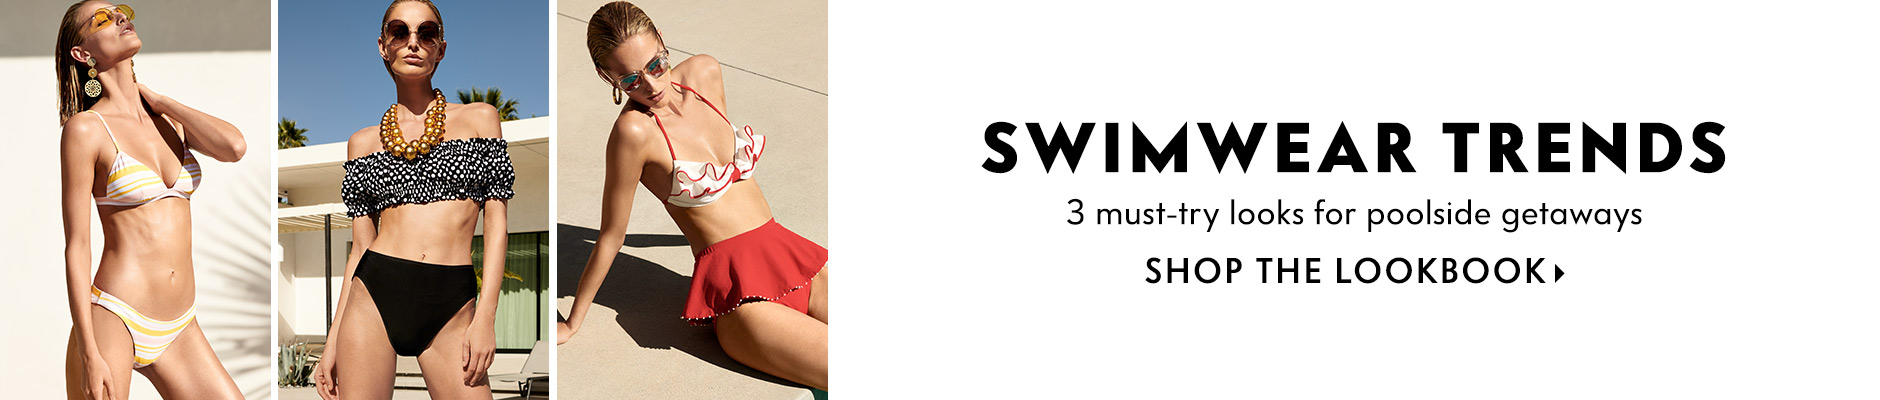 Swim Trend Lookbook